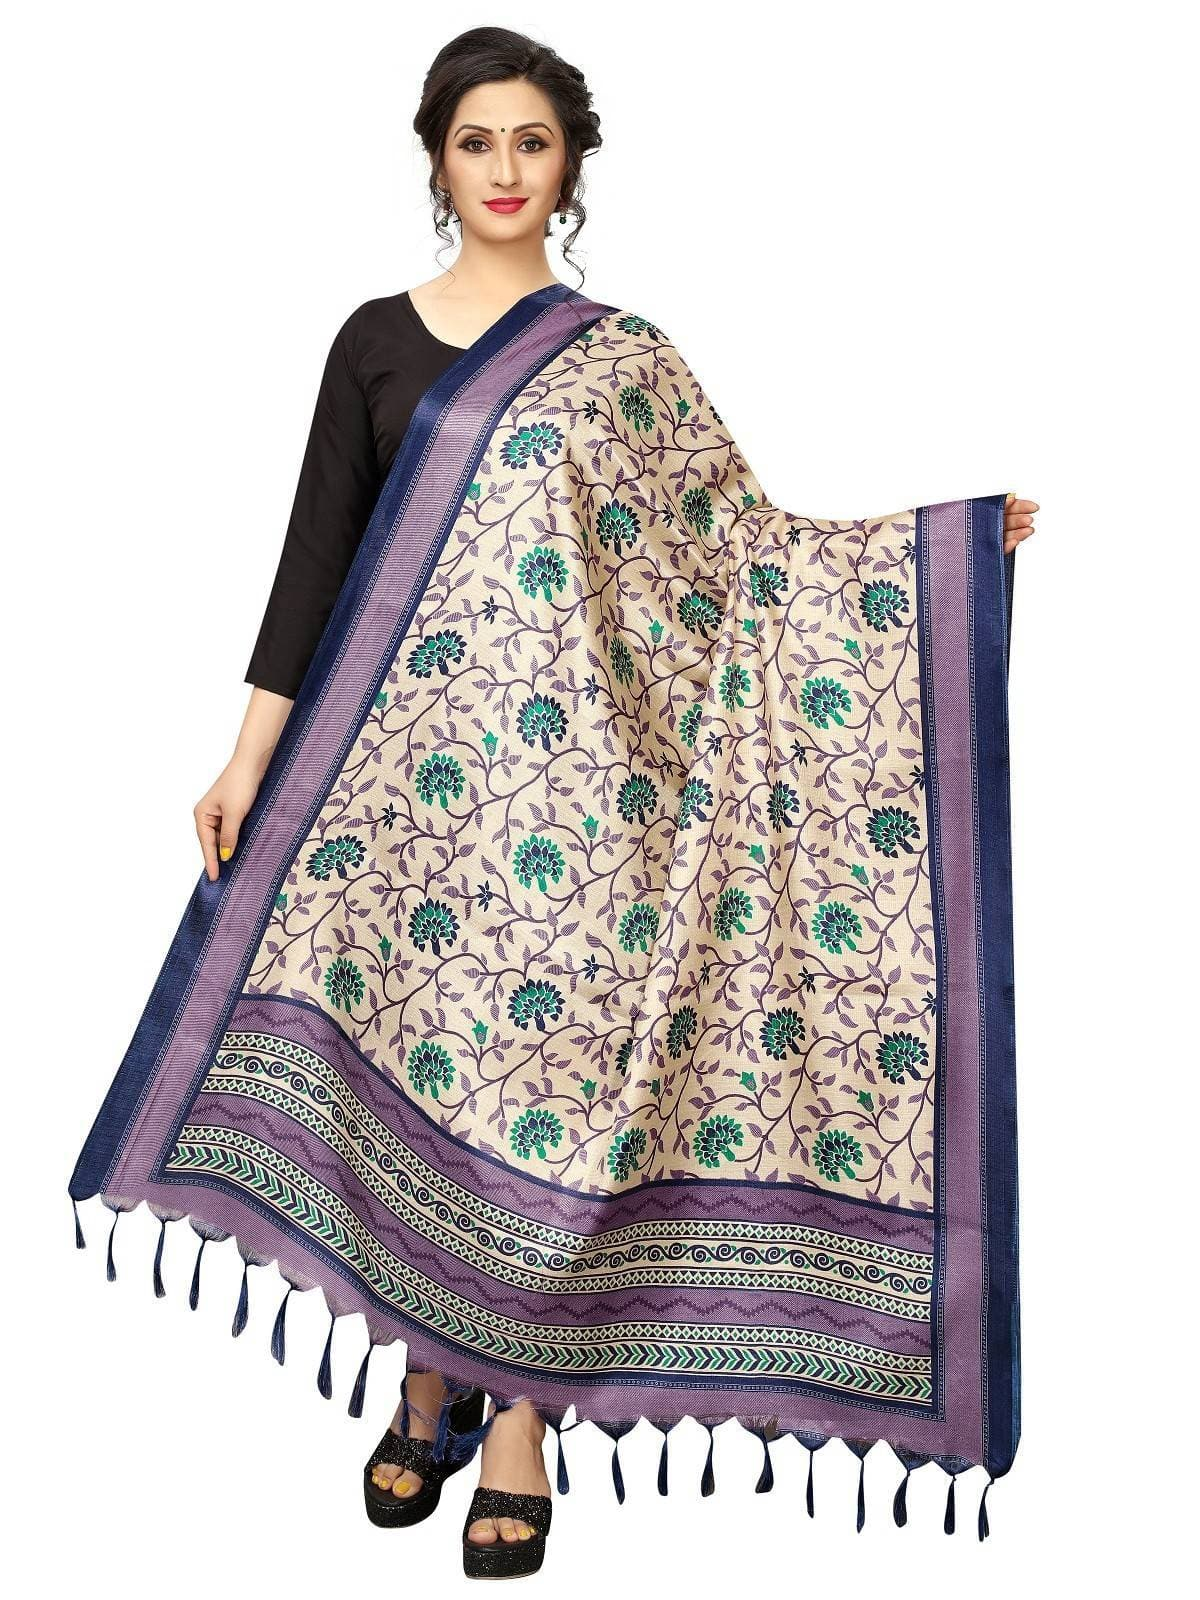 Vamika Beautiful Navy Blue Printed Khadi Bhagalpuri Dupatta